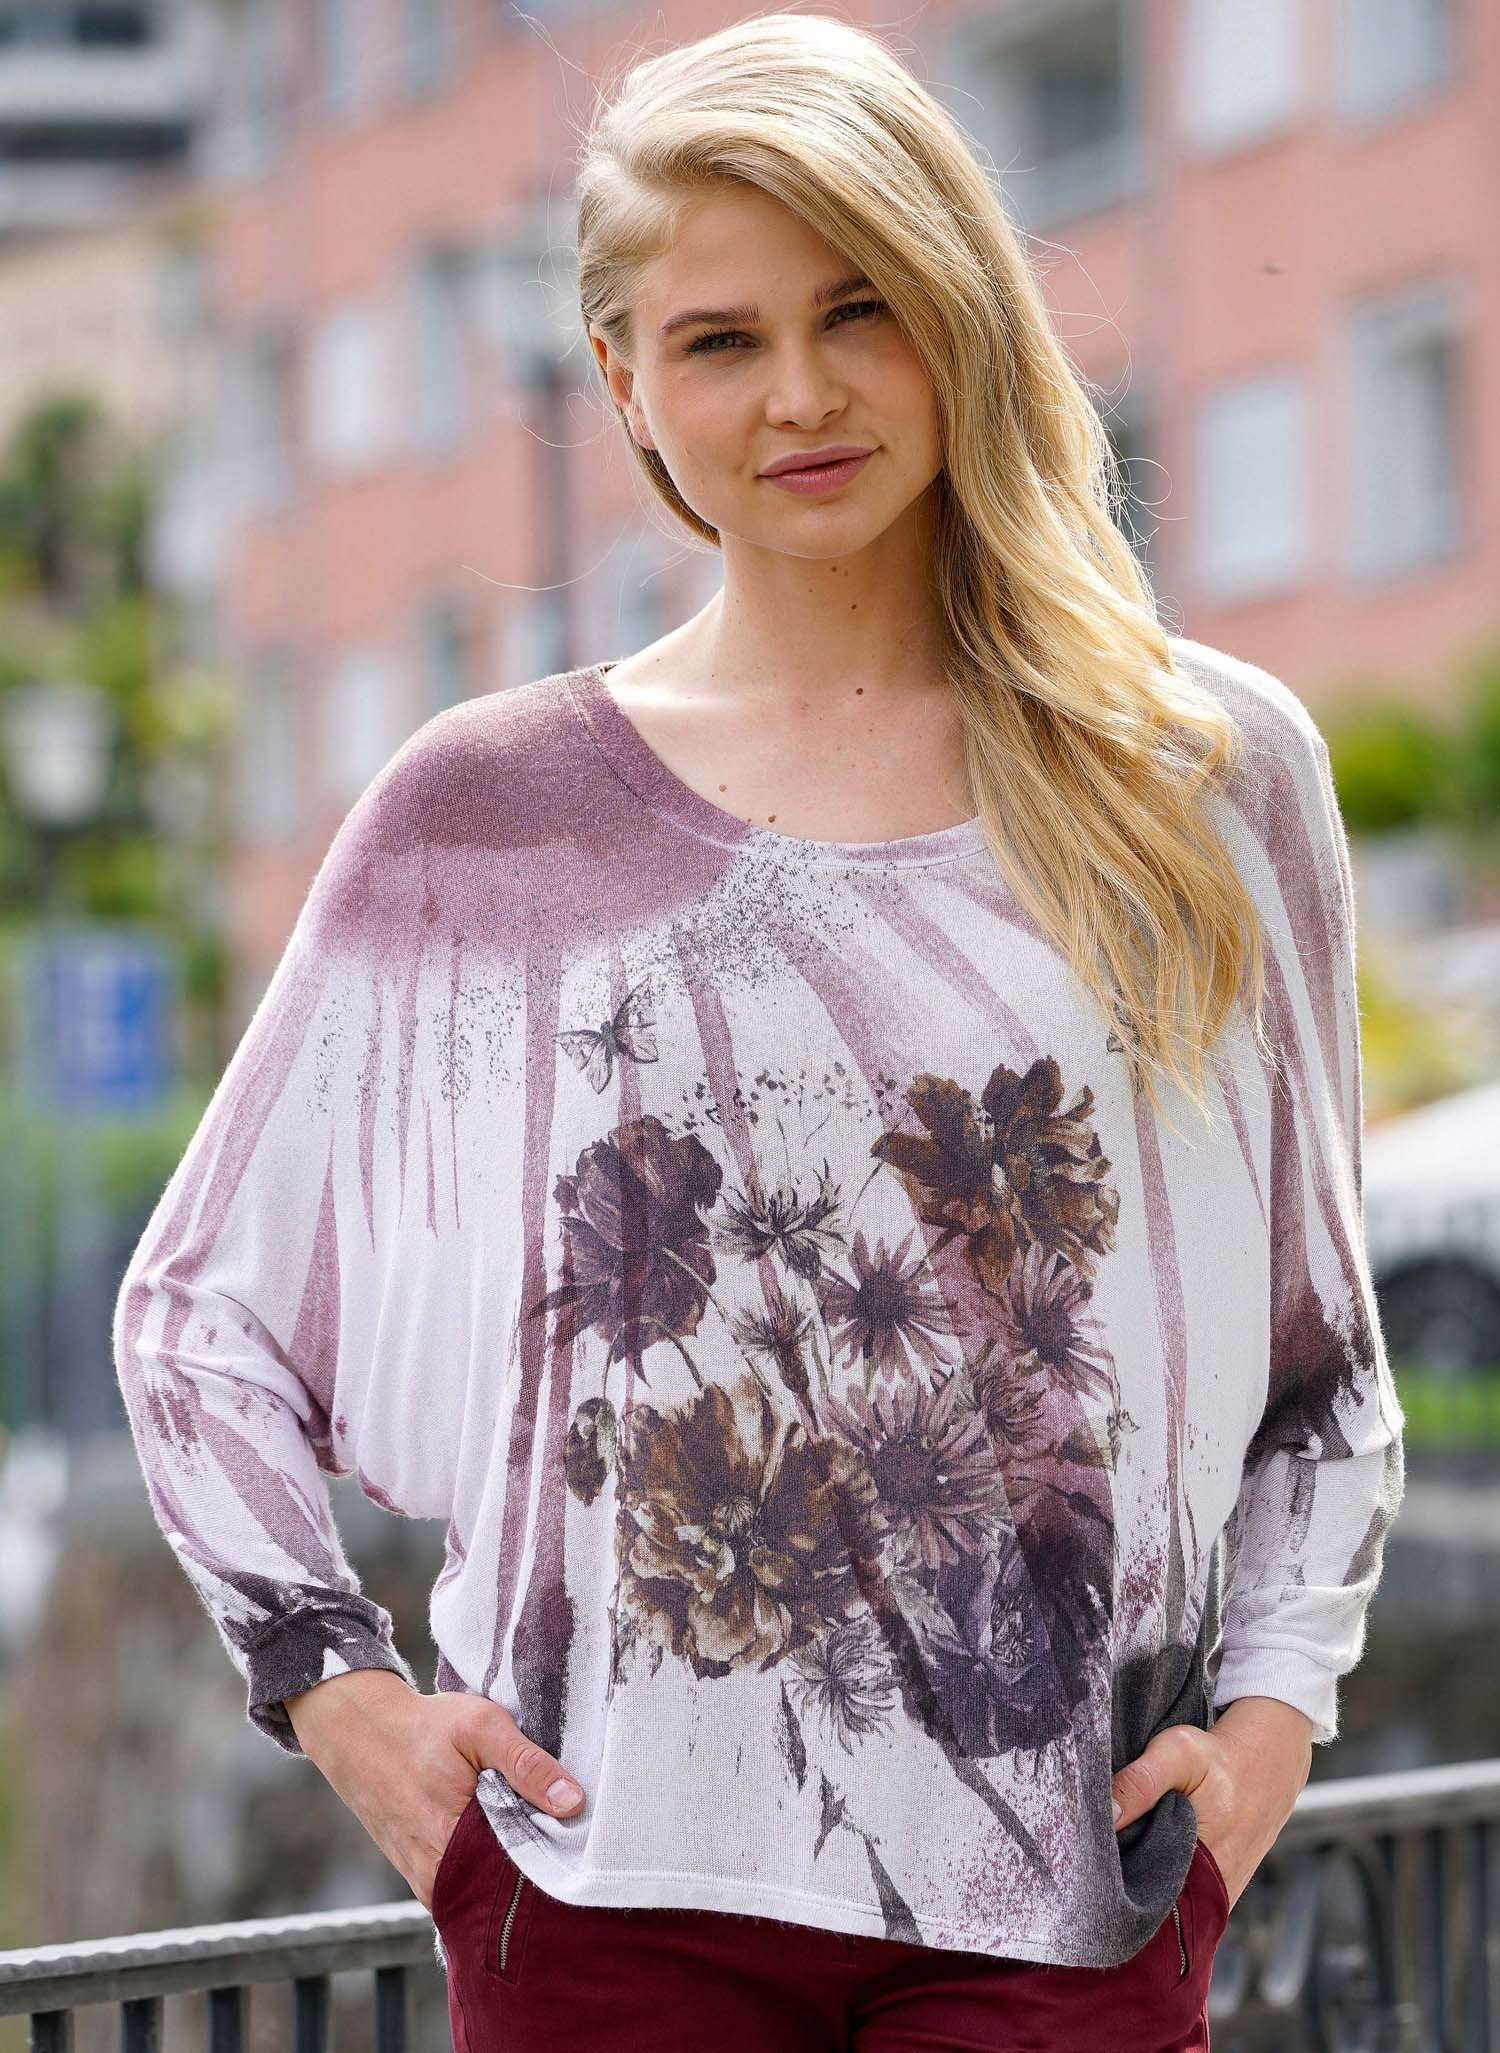 D-Pullover,Floral altrosa/anth XL 134 - 1 - Ronja.ch